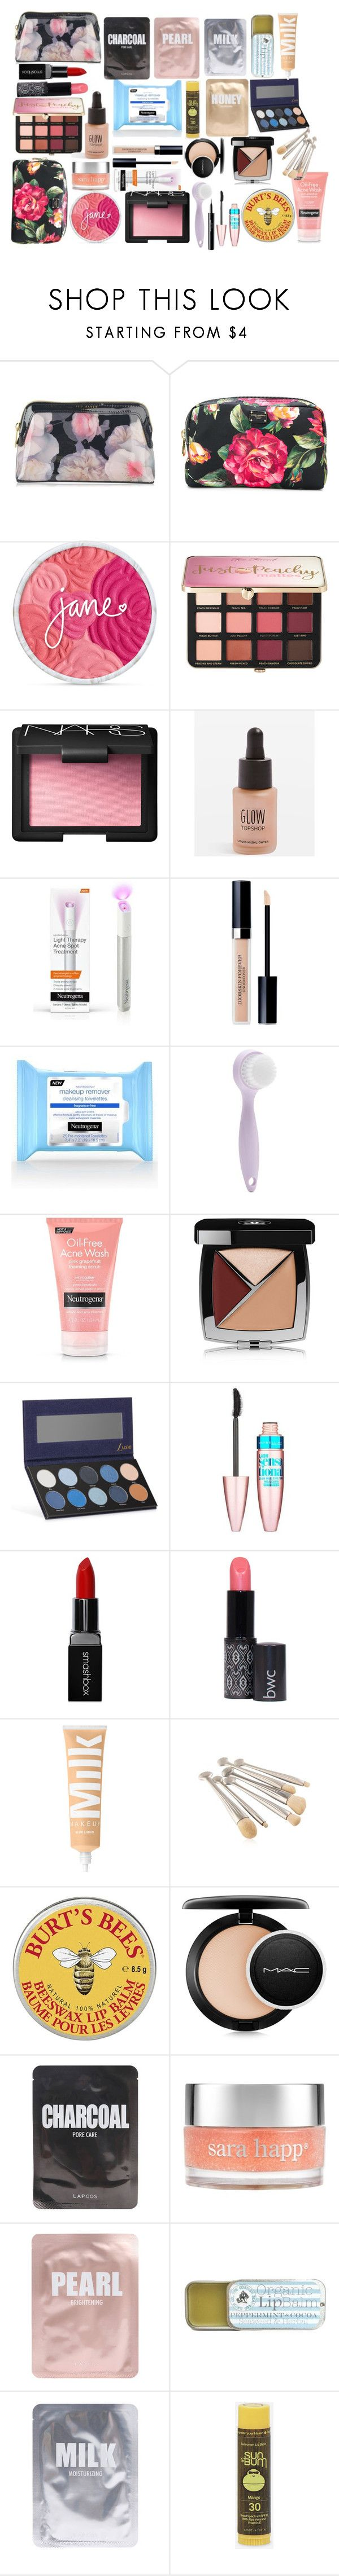 """""""Emily's Make-up Bag!"""" by tiaban ❤ liked on Polyvore featuring Ted Baker, Dolce&Gabbana, Sephora Collection, NARS Cosmetics, Topshop, Therapy, Christian Dior, Forever 21, Neutrogena and Chanel"""